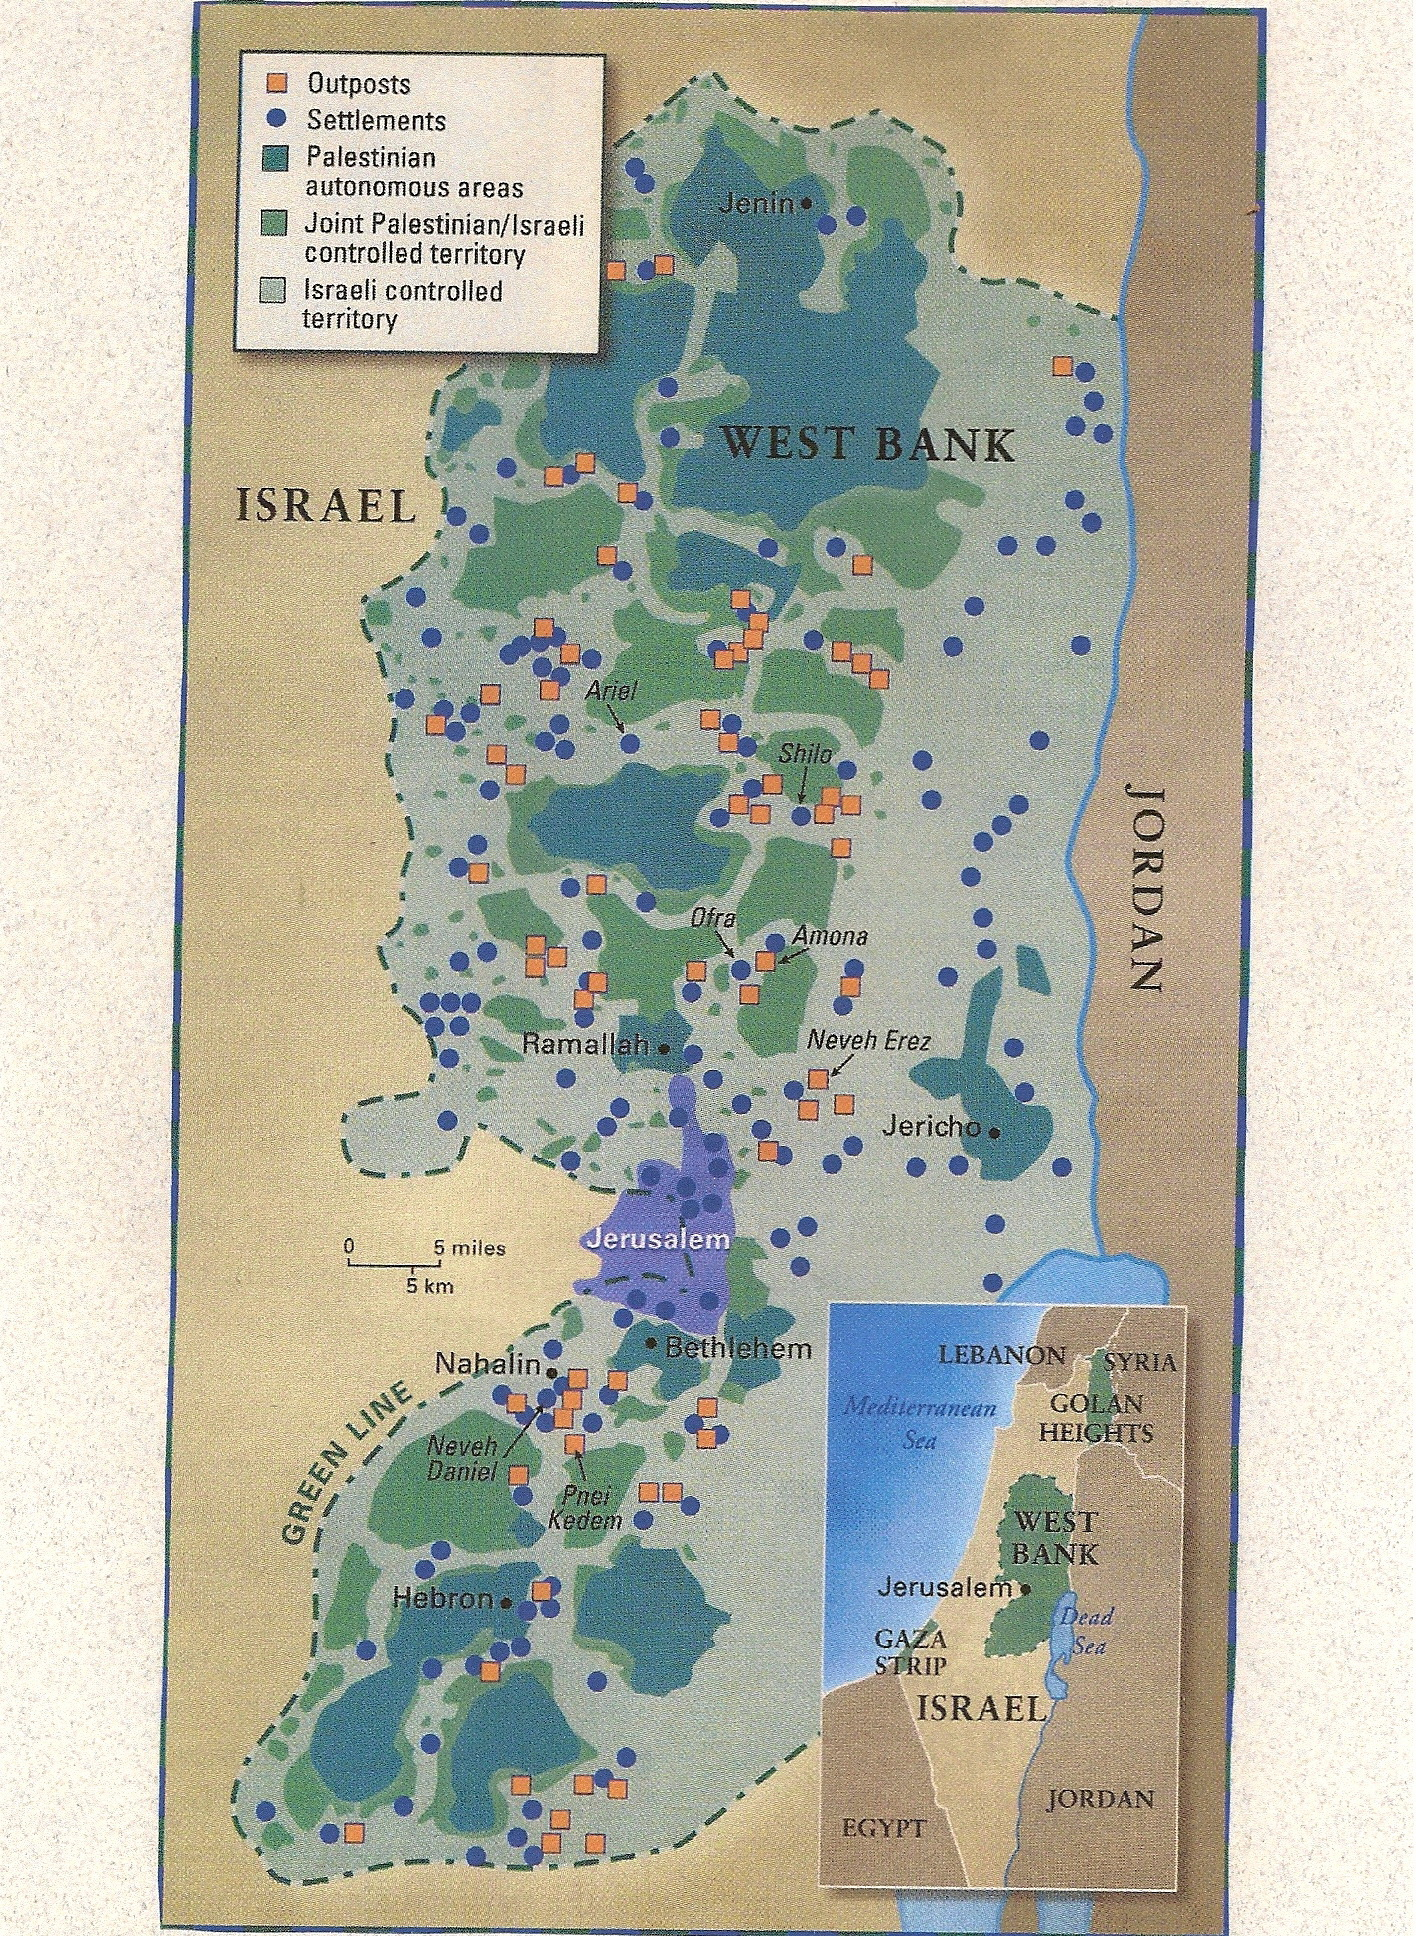 Norman Finkelstein on the viability of a 2 state solution to